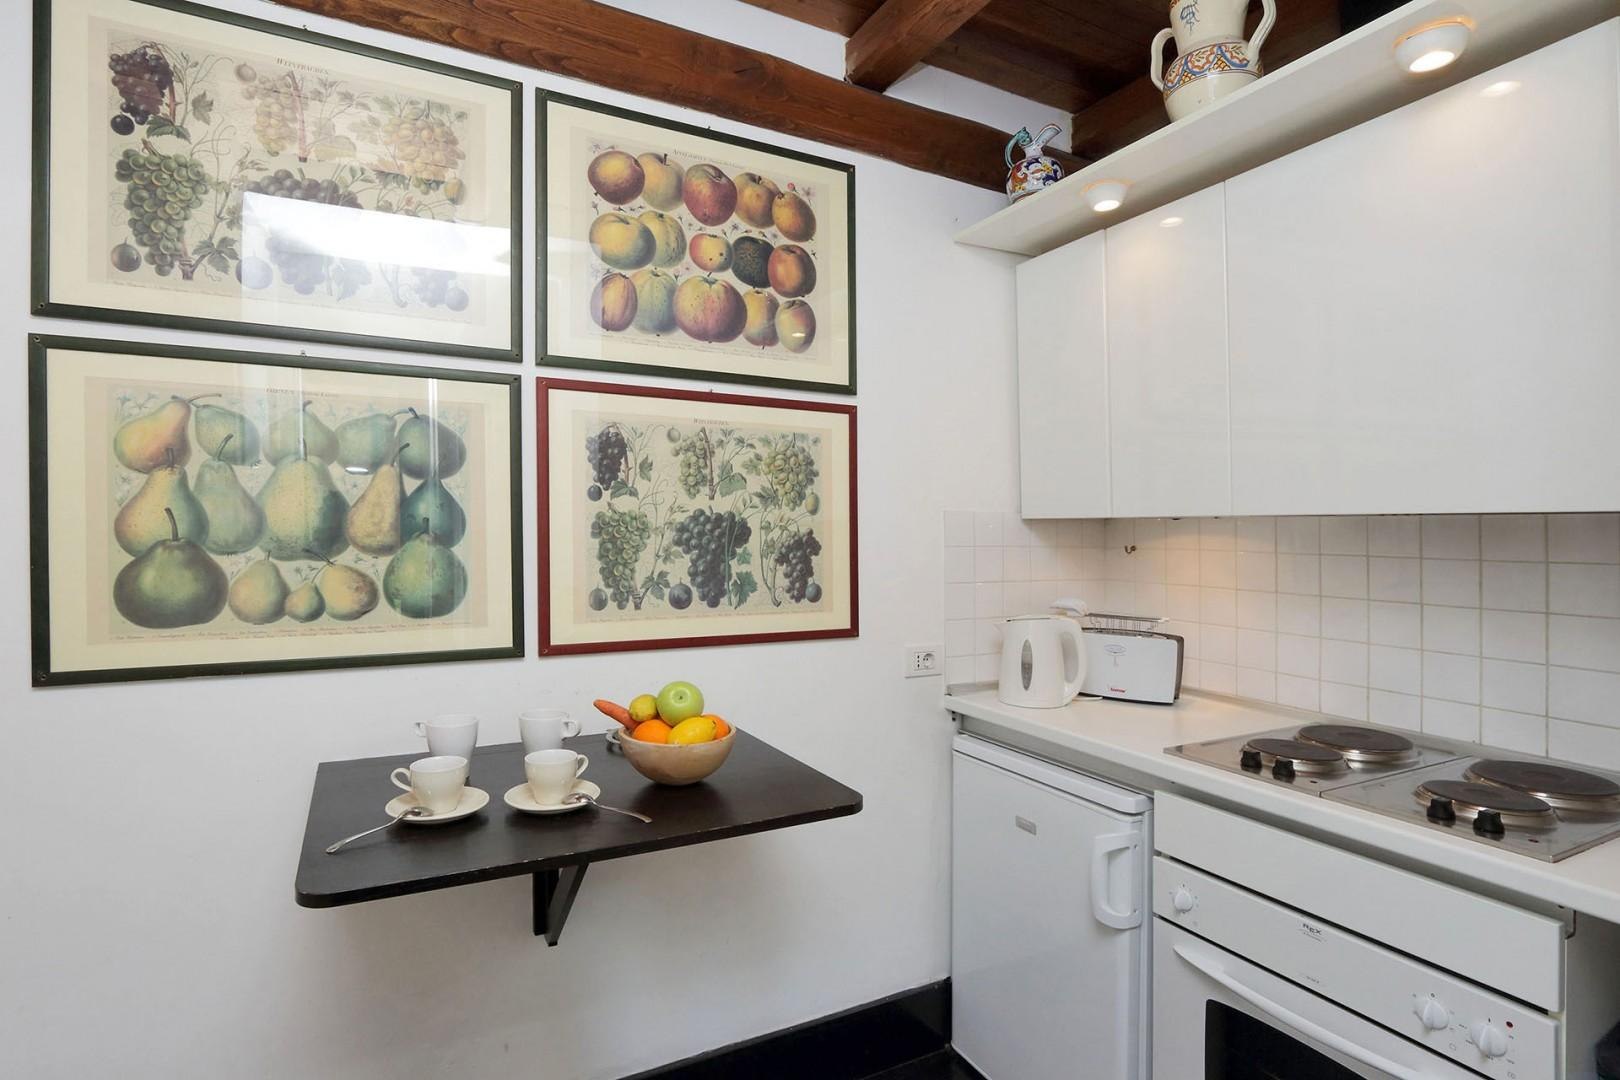 The well-lit, galley style kitchen has the sink and dishwasher with cabinets above on one side.